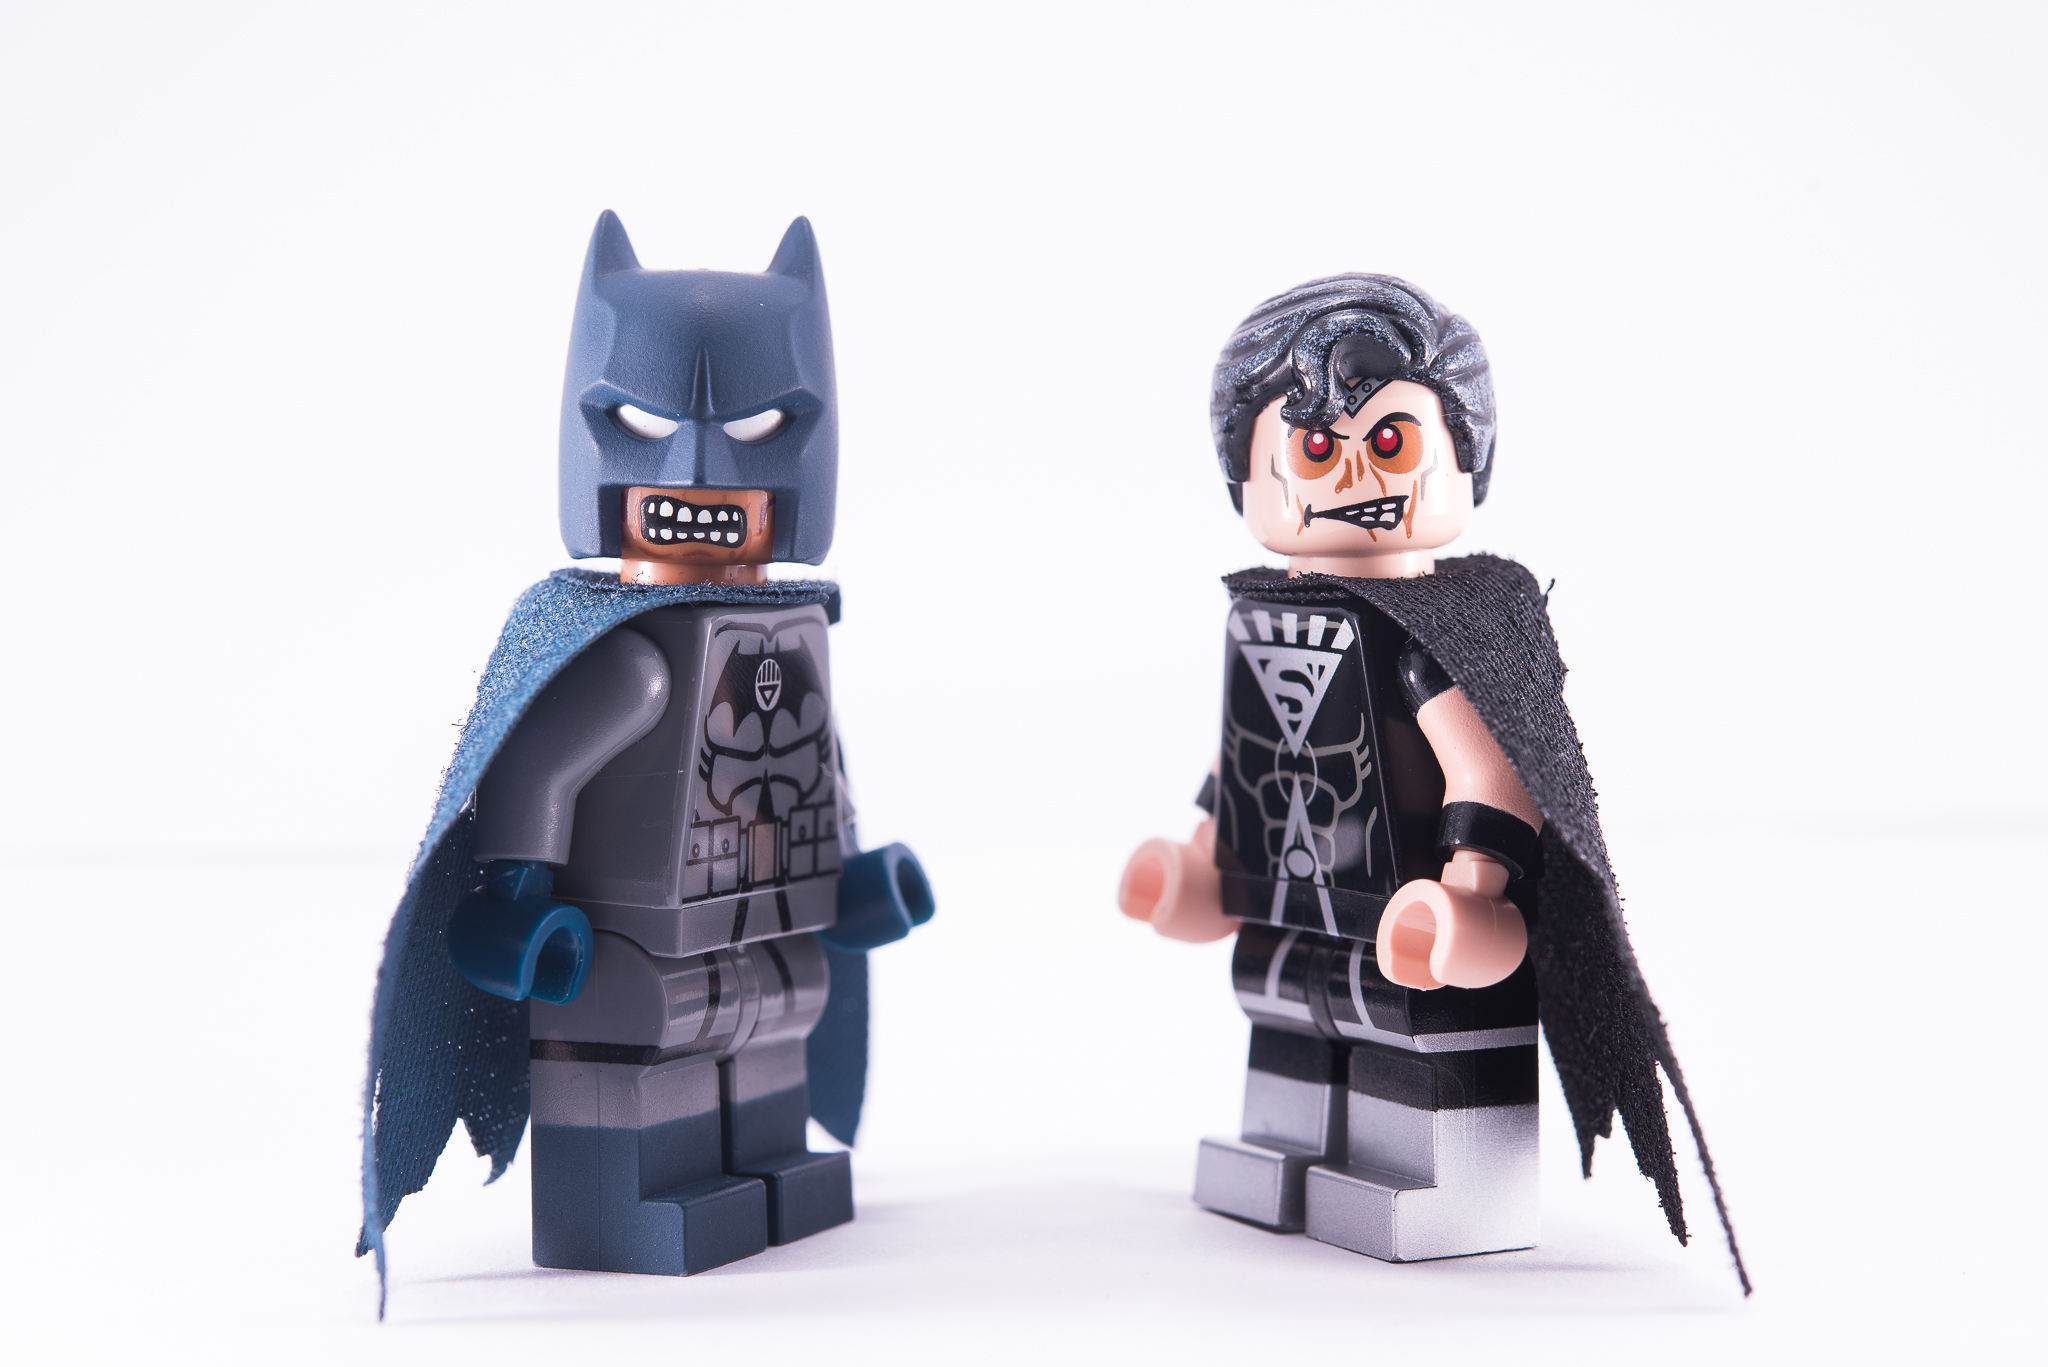 Undead Steel and Undead Knight Custom Minifigures